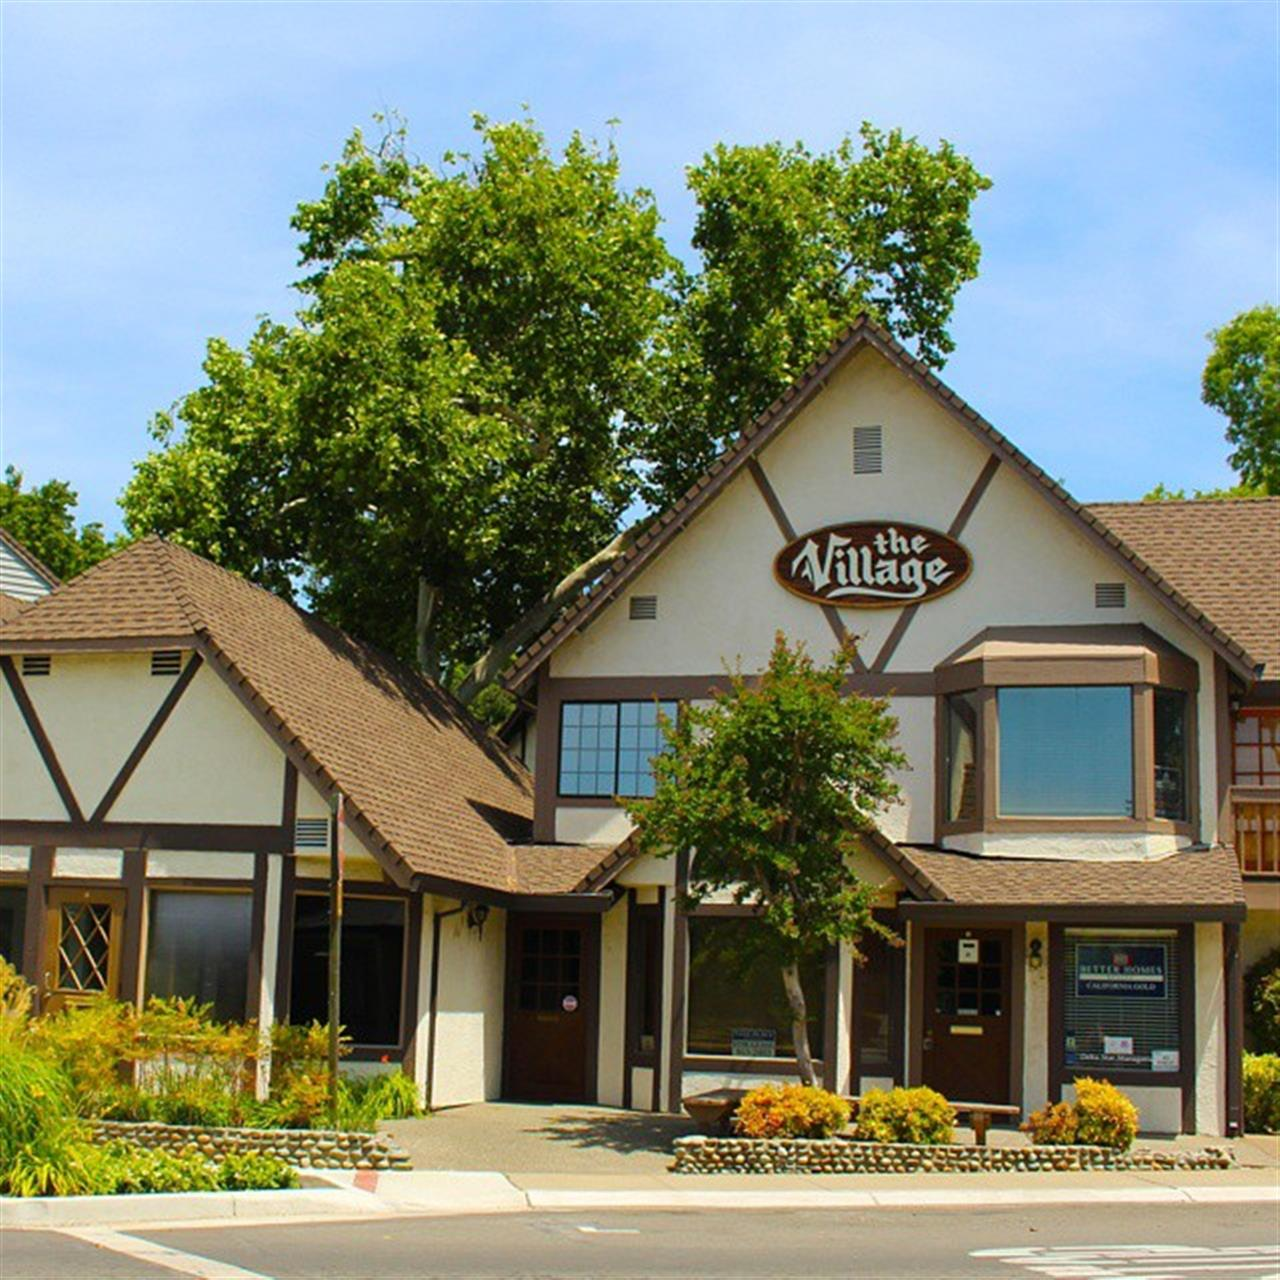 The Fair Oaks Village is such a quaint part of town. Great for a family outing. #leadingrelocal #lyonrealestate #oldfairoaks #fairoaksvillage #fairoaks